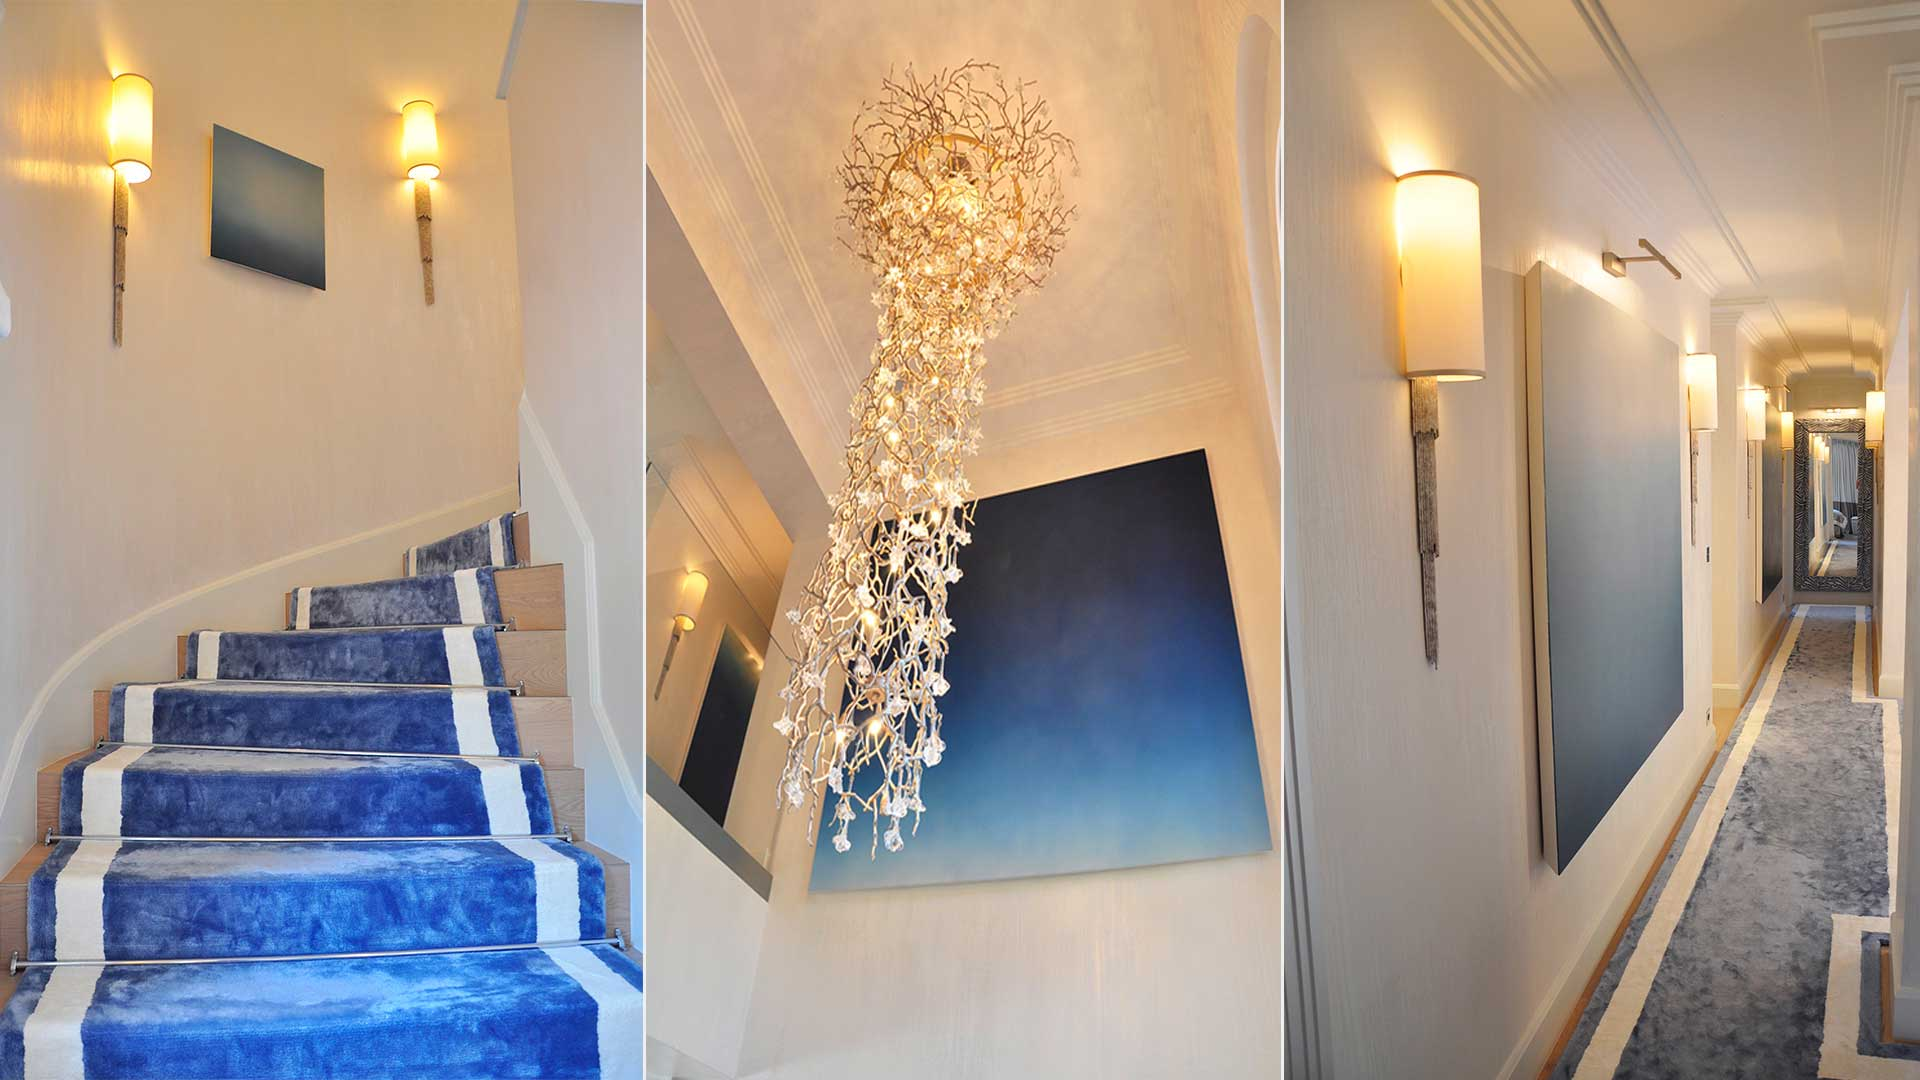 SUMMER-HOUSE-FRENCH-RIVIERA-04-Dome-interior-design-Geneve-Suisse